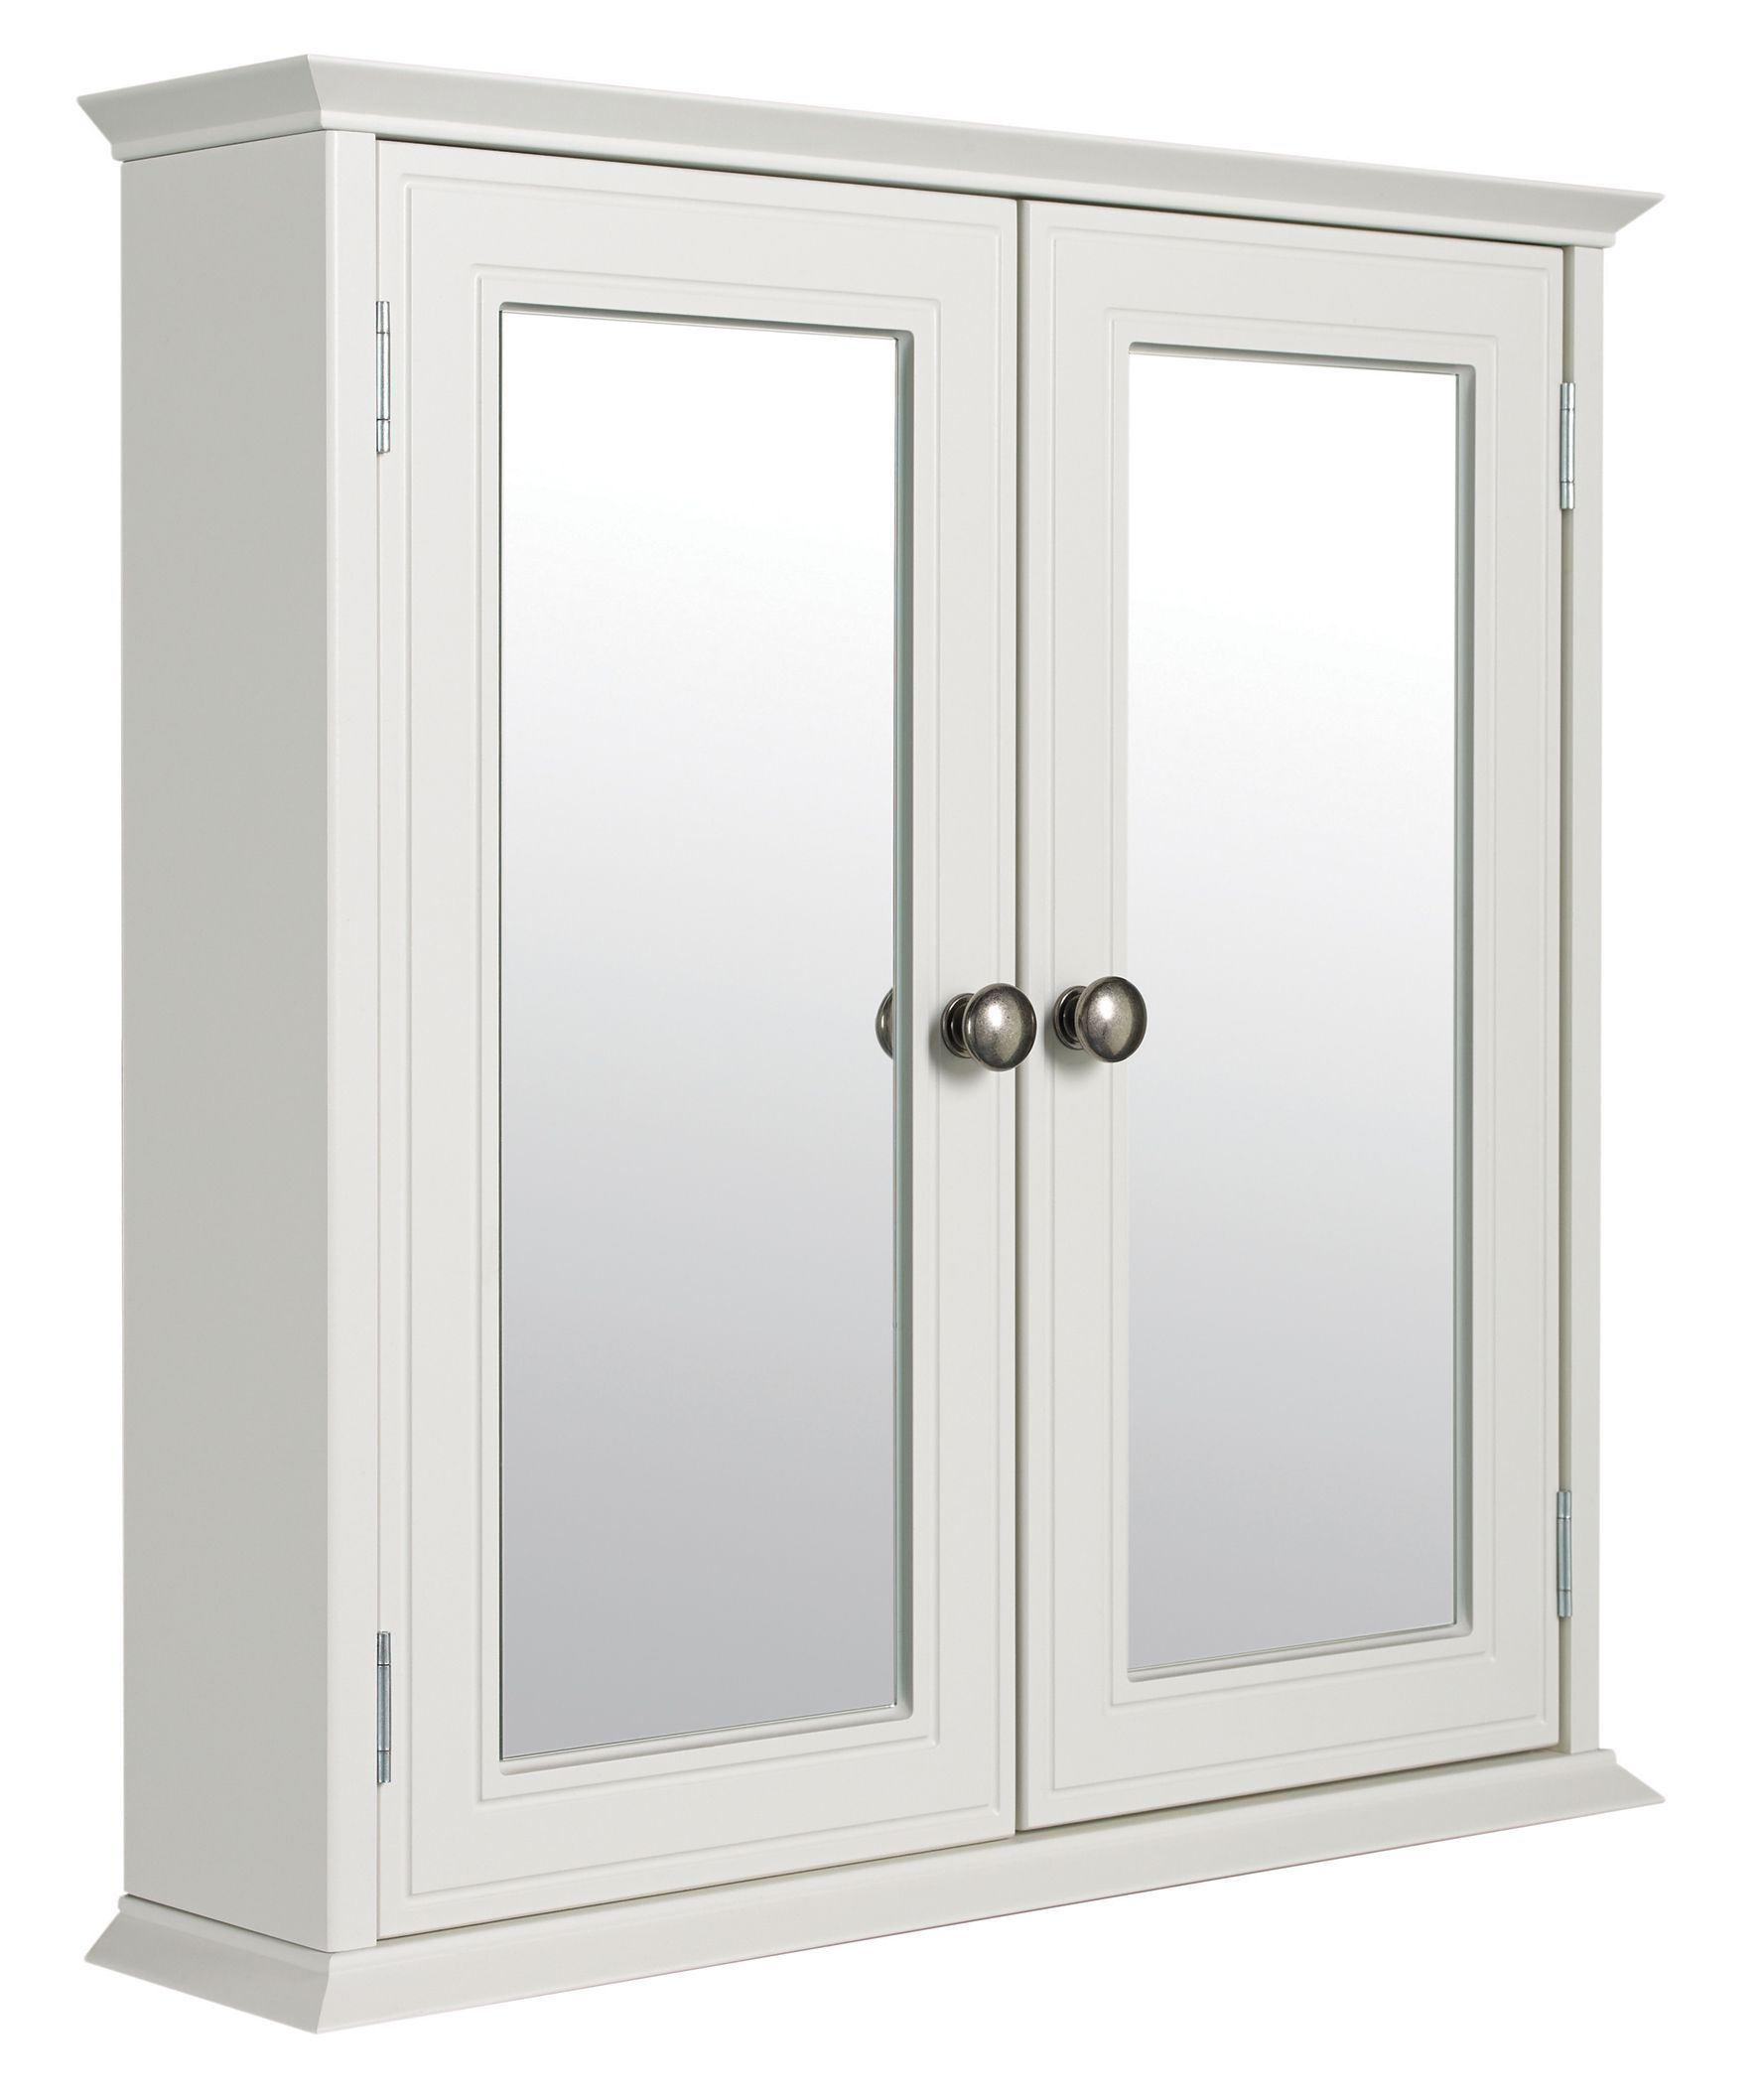 Cooke lewis romano double door white mirror cabinet for White mirrored cabinet